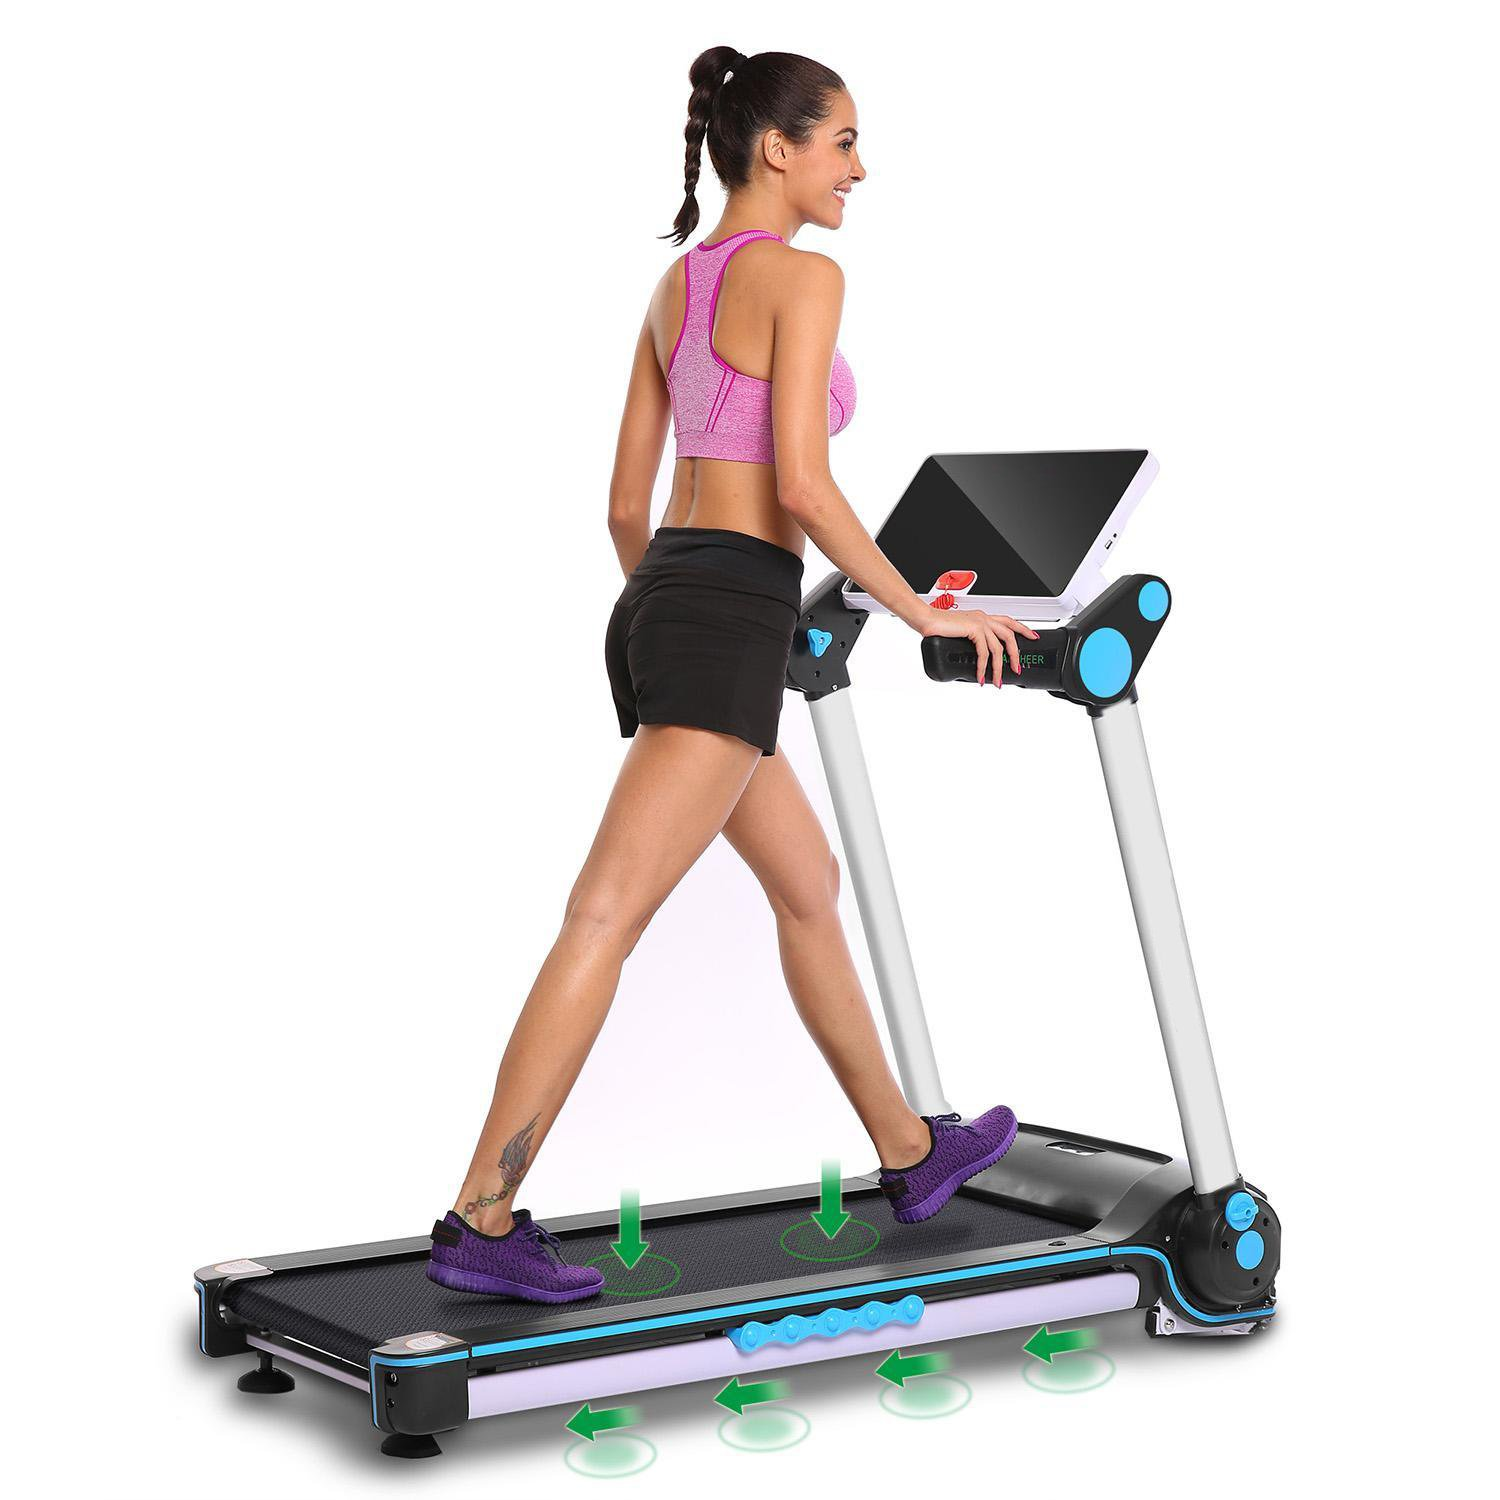 Garain S6400 Folding Electric Treadmill, Bluetooth App Control Touch Screen Exercise Equipment Walking Running Machine Home Fitness Treadmills (US STOCK) by Garain (Image #6)